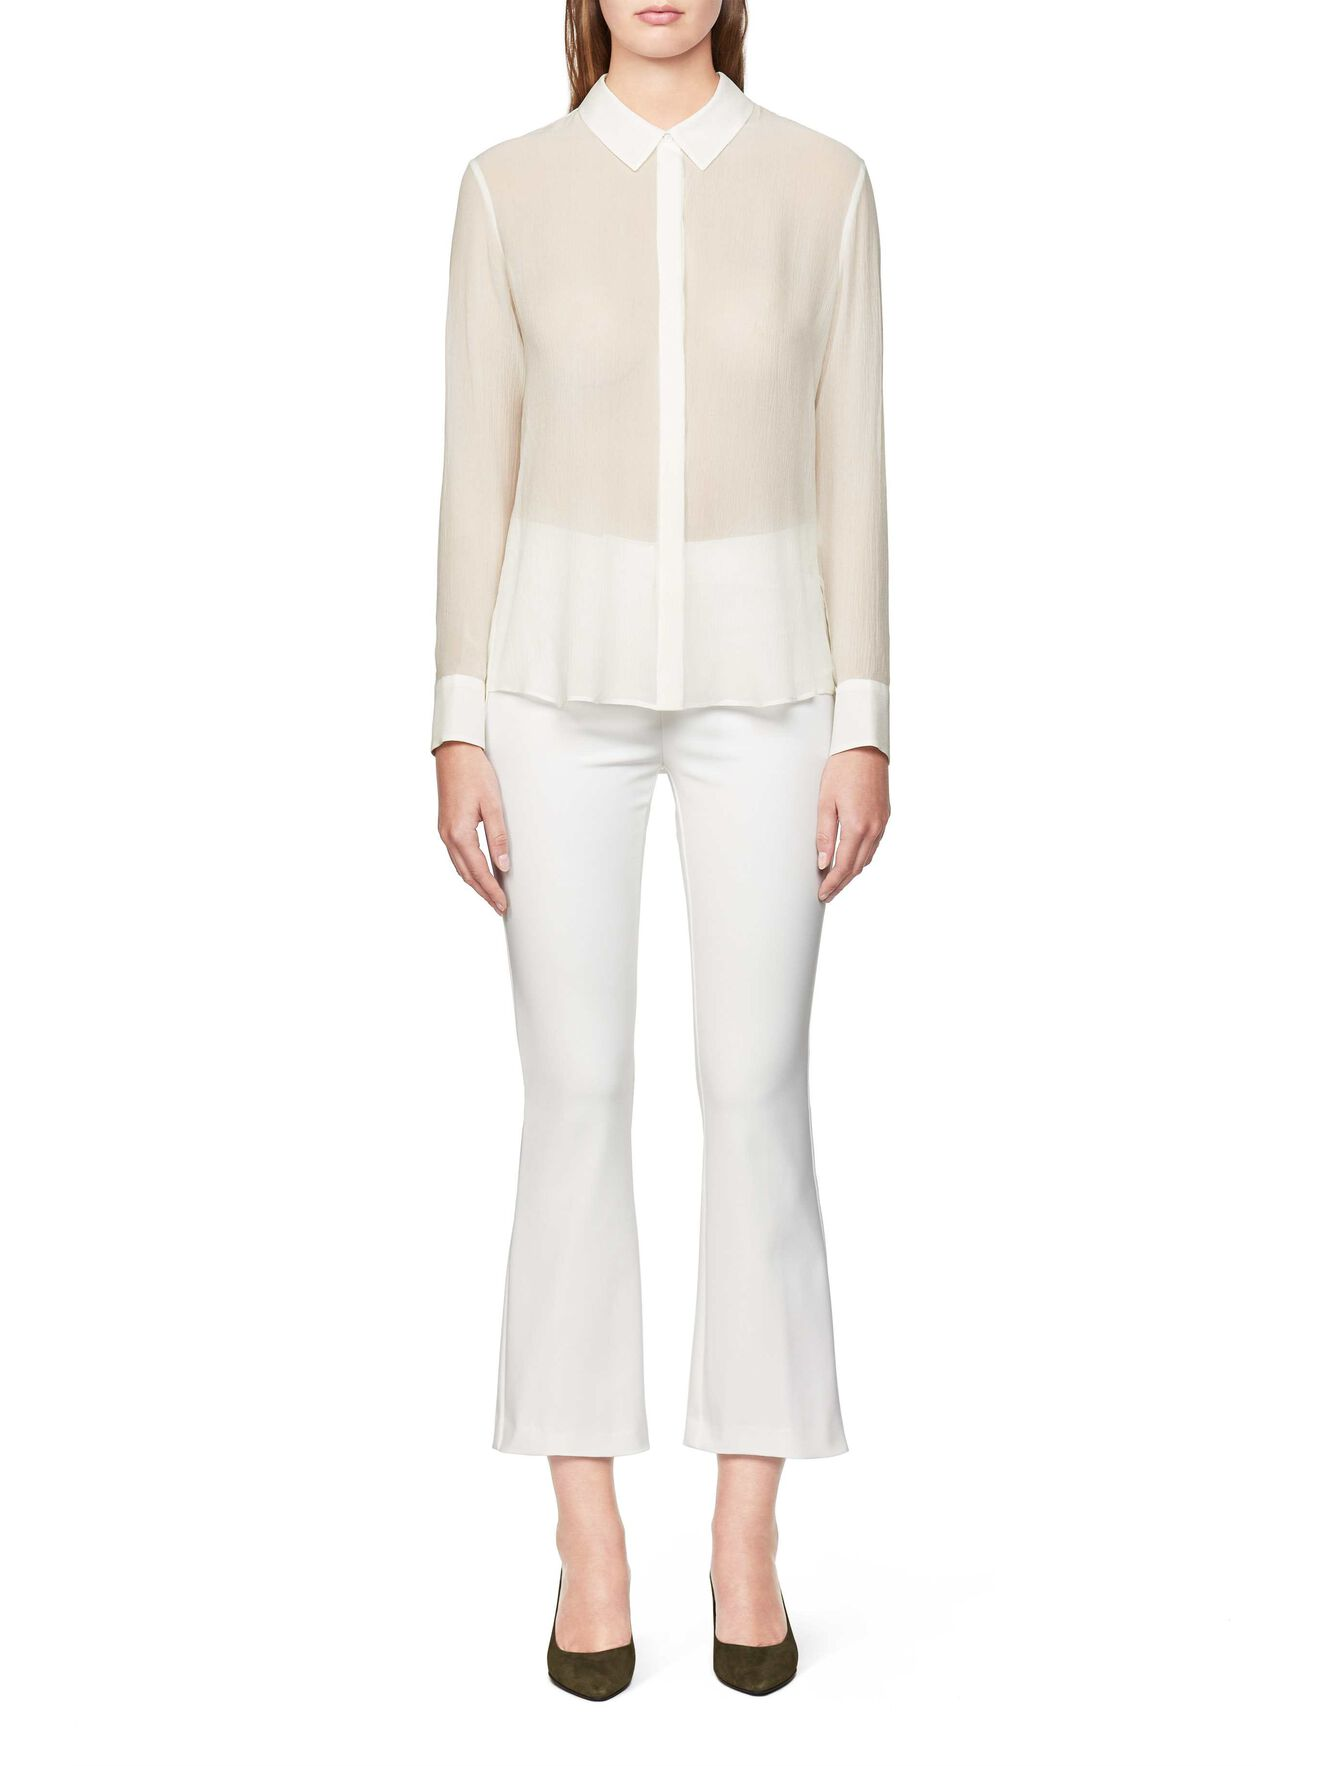 Silwa S Shirt in Star White from Tiger of Sweden